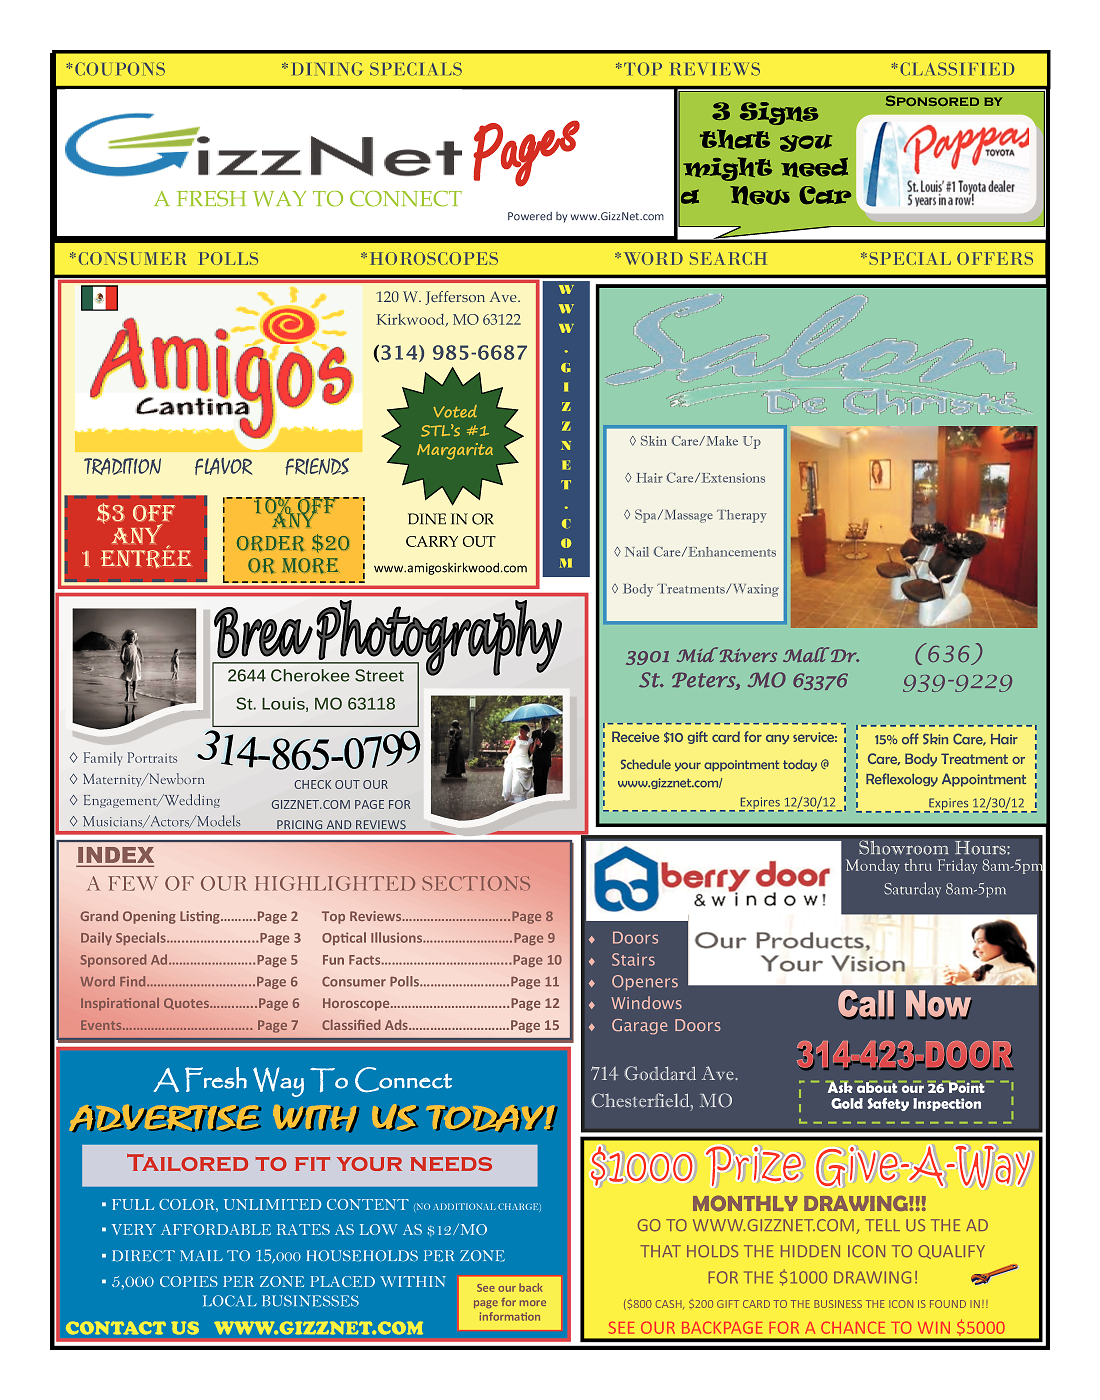 Advertising And Coupons  Gizznet Pages  Pages Full Color